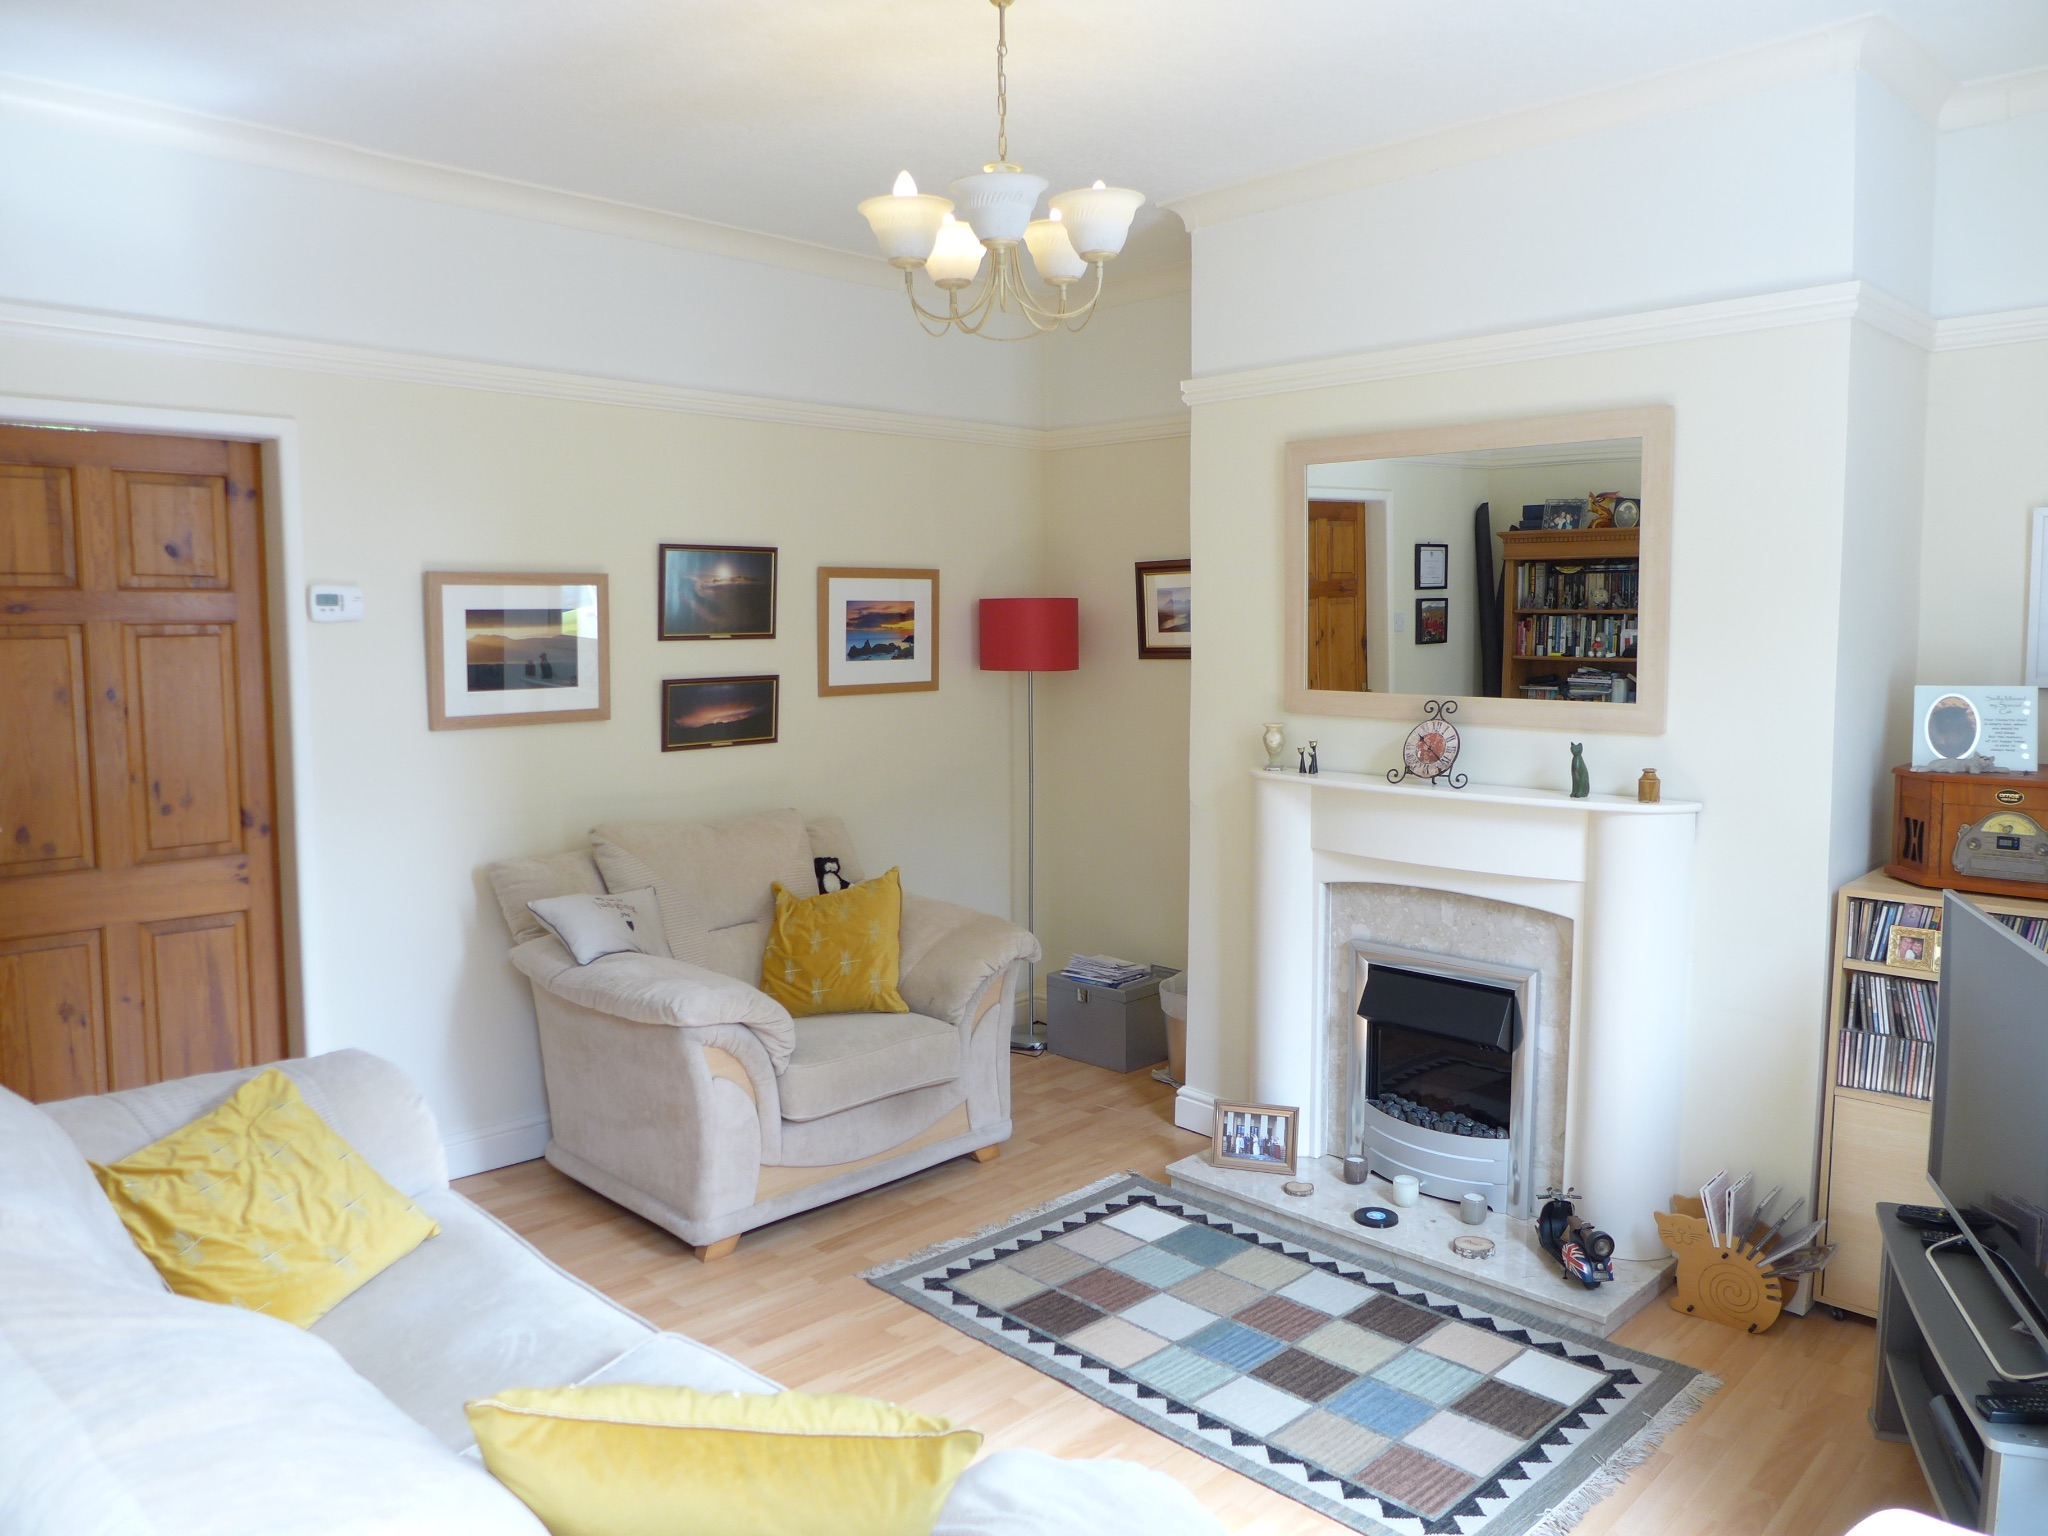 3 bedroom end terraced house For Sale in Todmorden - Photograph 2.